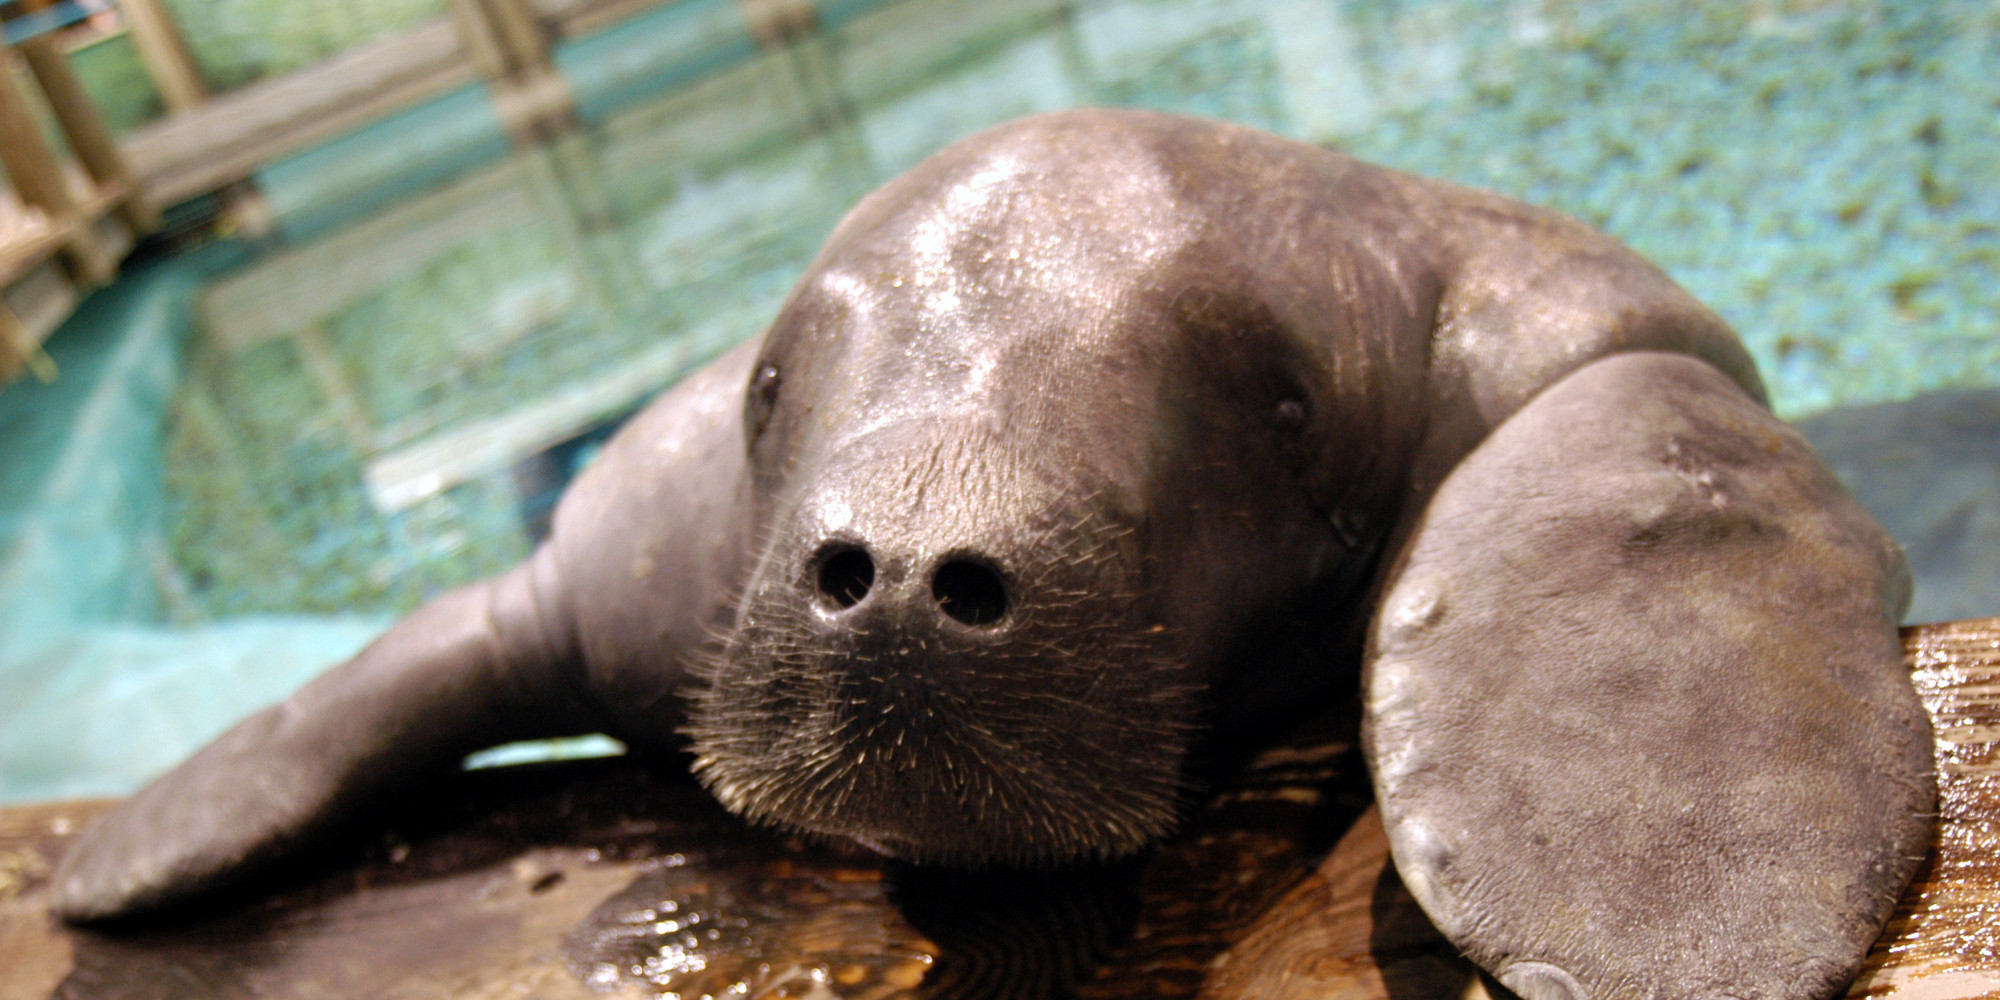 a very important manatee just got inducted into the guinness book